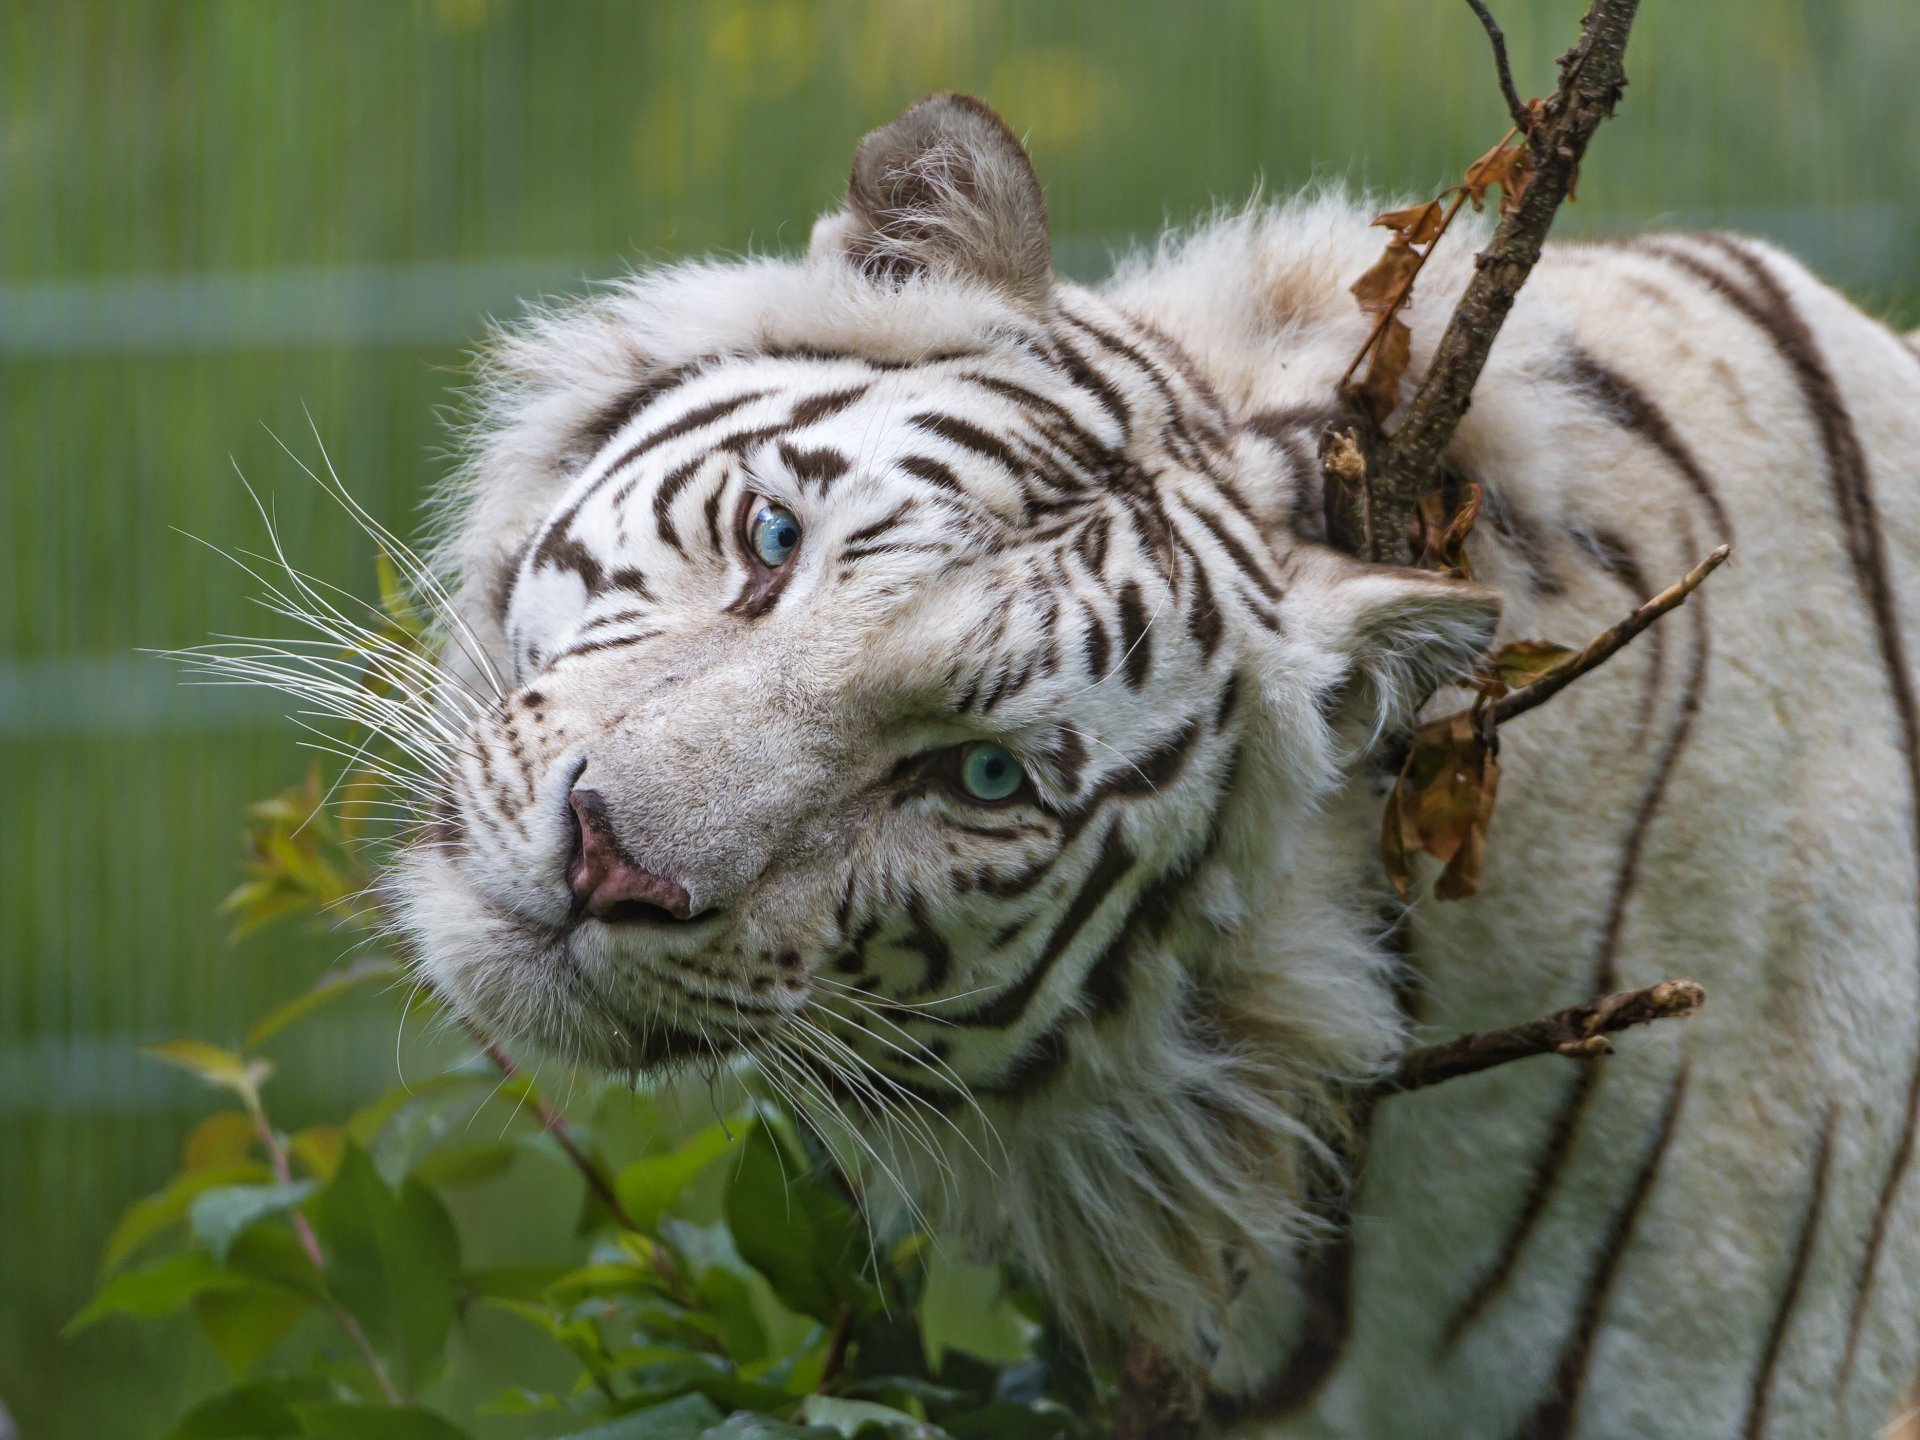 Siberian Tiger - Animal Kingdom Facts and Pictures White tiger with blue eyes pictures